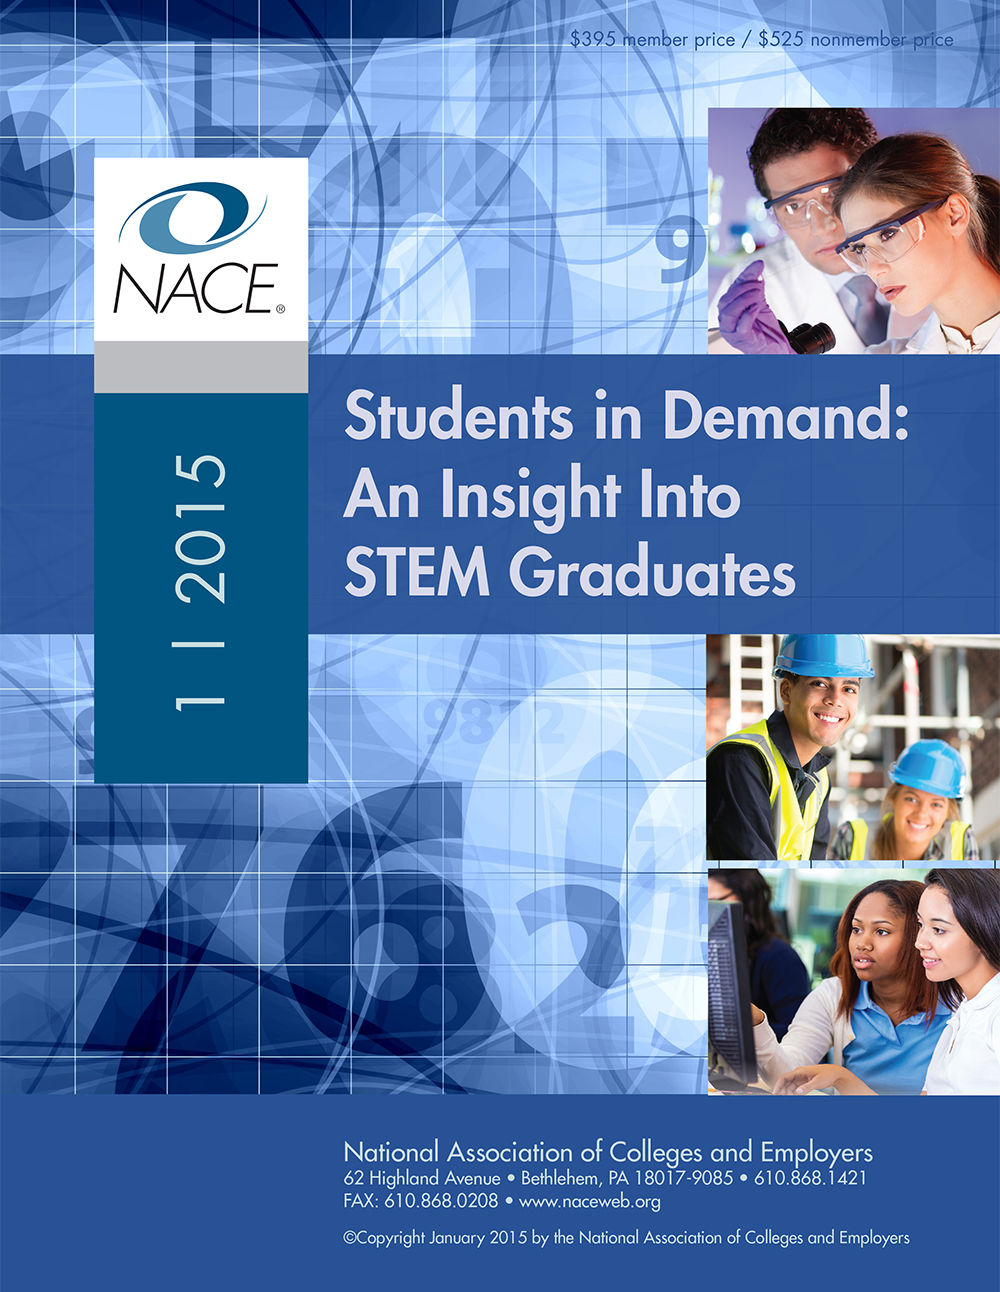 An Insight into 2014 STEM Graduates